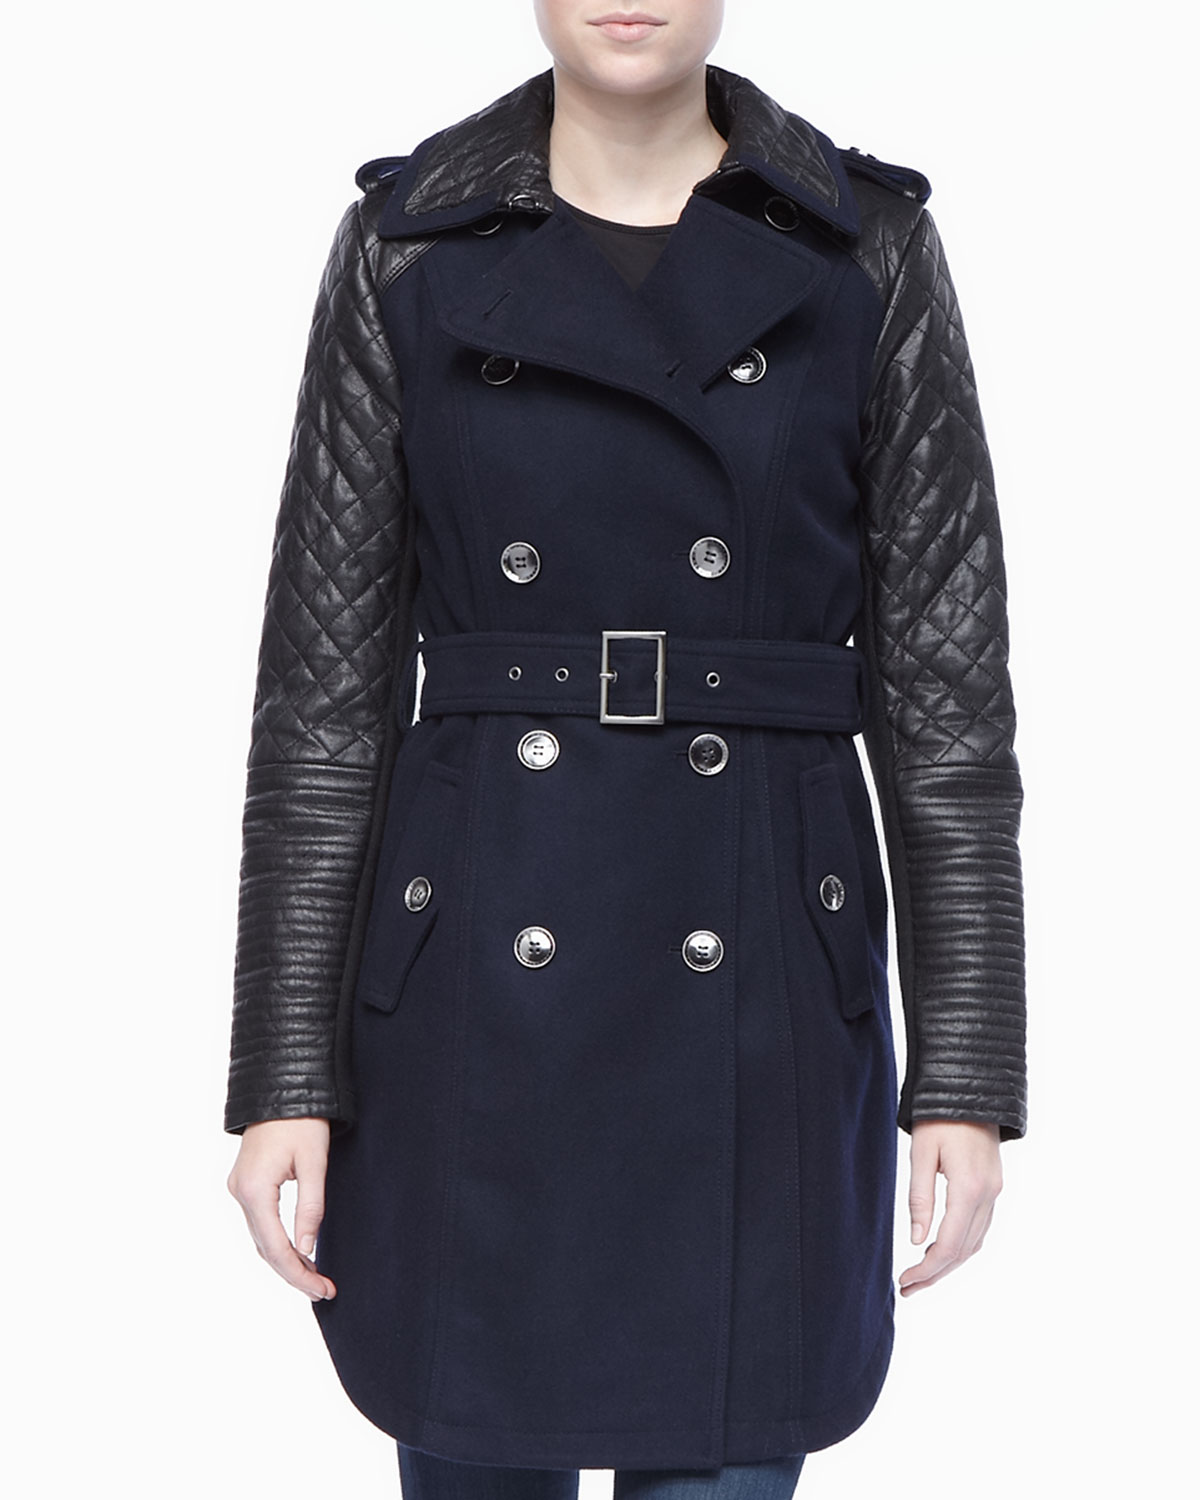 Free shipping and returns on leather & faux-leather coats & jackets for women at hereuloadu5.ga Shop the latest styles from brands like BLANKNYC, Bernardo, Halogen & more.